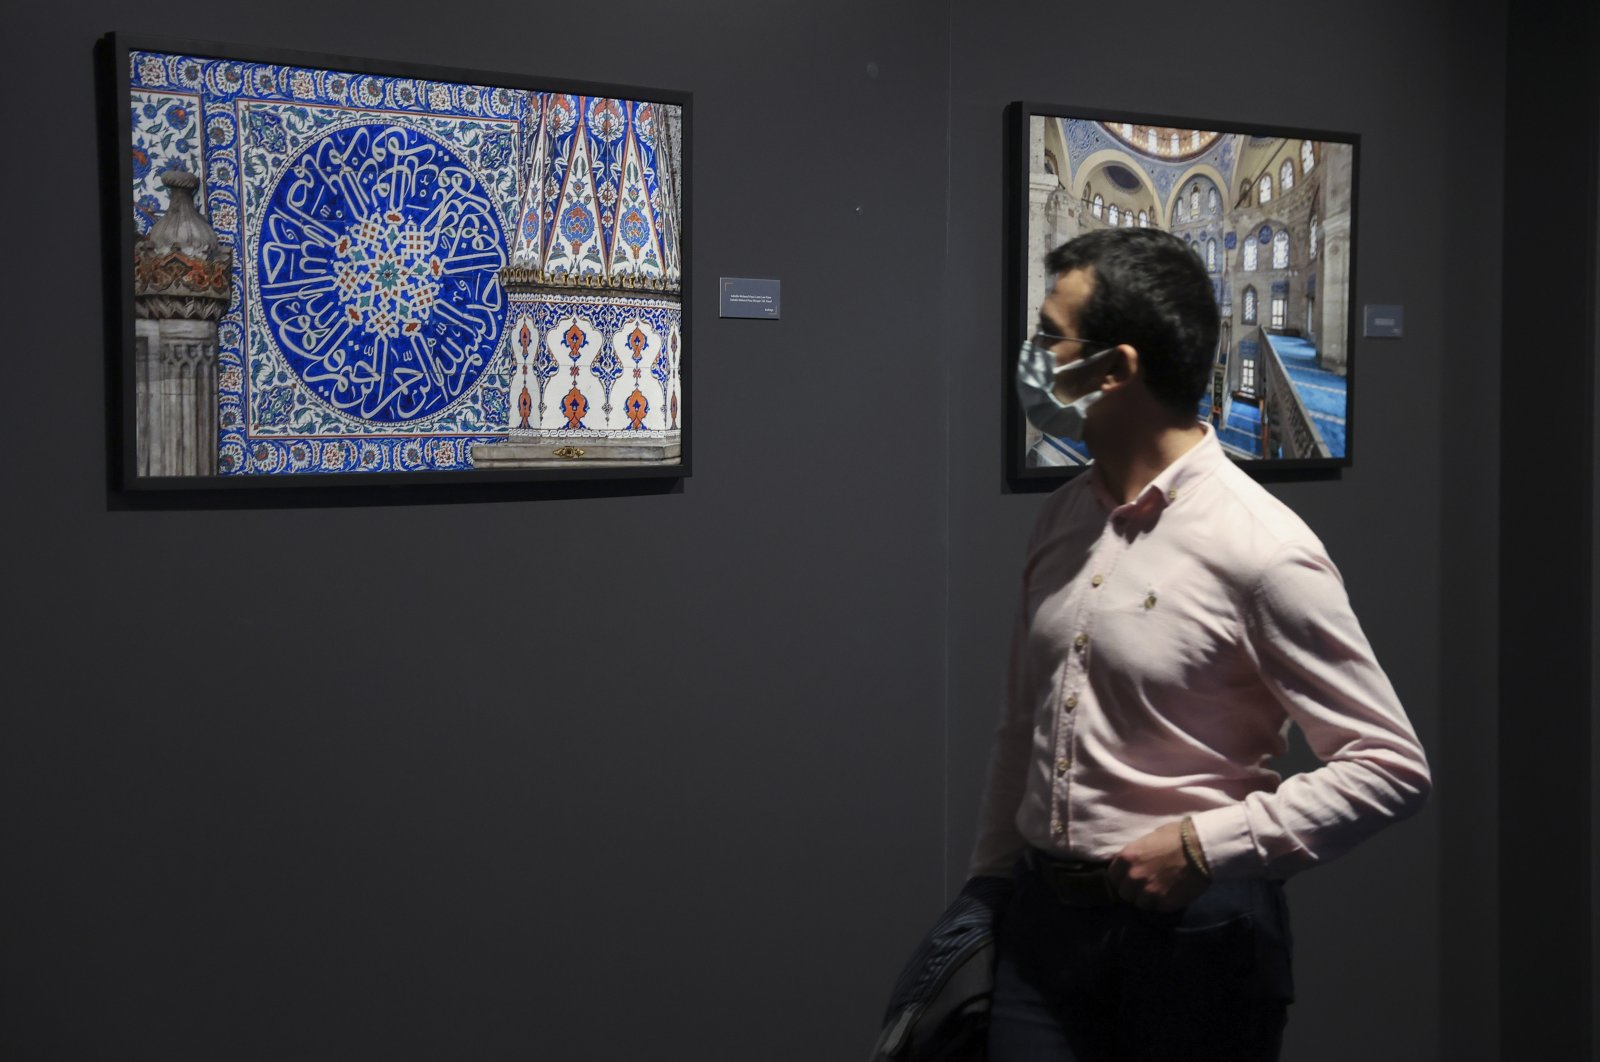 """A visitor examines a photo by Izzet Keribar in the exhibition """"Heritage: Ottoman Architecture and Tile Art in Istanbul,"""" Museum of Turkish and Islamic Arts, Istanbul, Turkey, Oct. 2, 2021. (AA Photo)"""